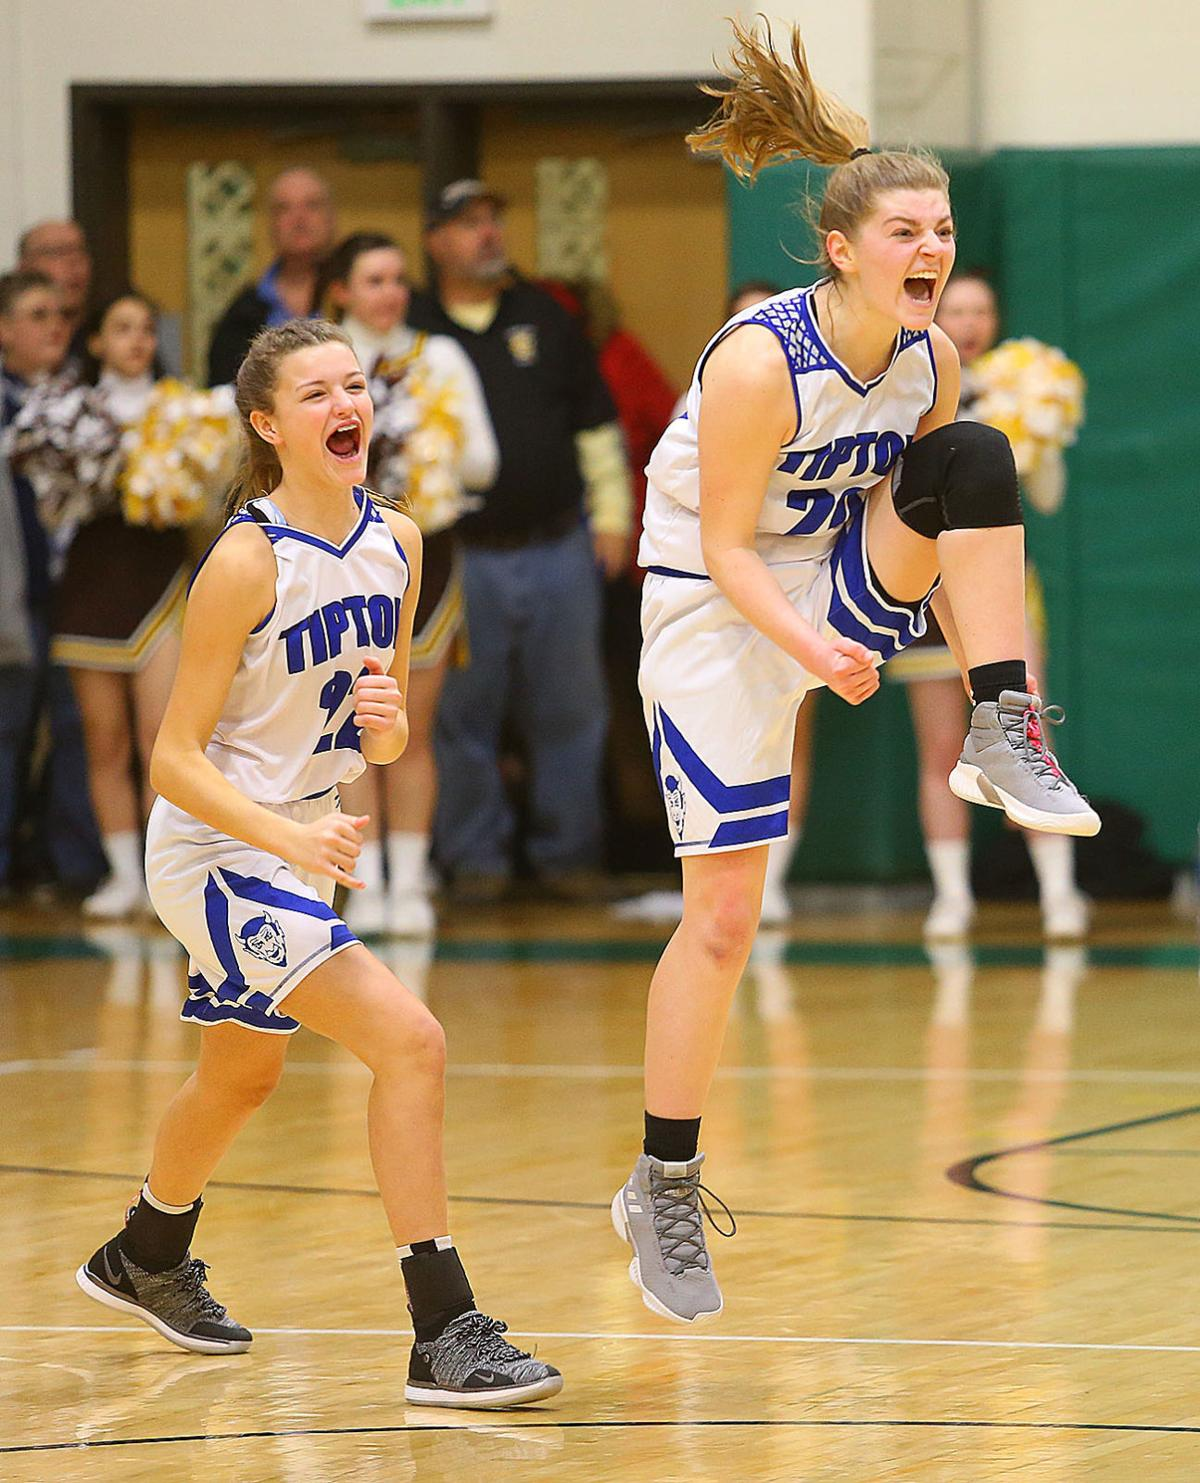 Tipton vs MC GBB 40.jpg